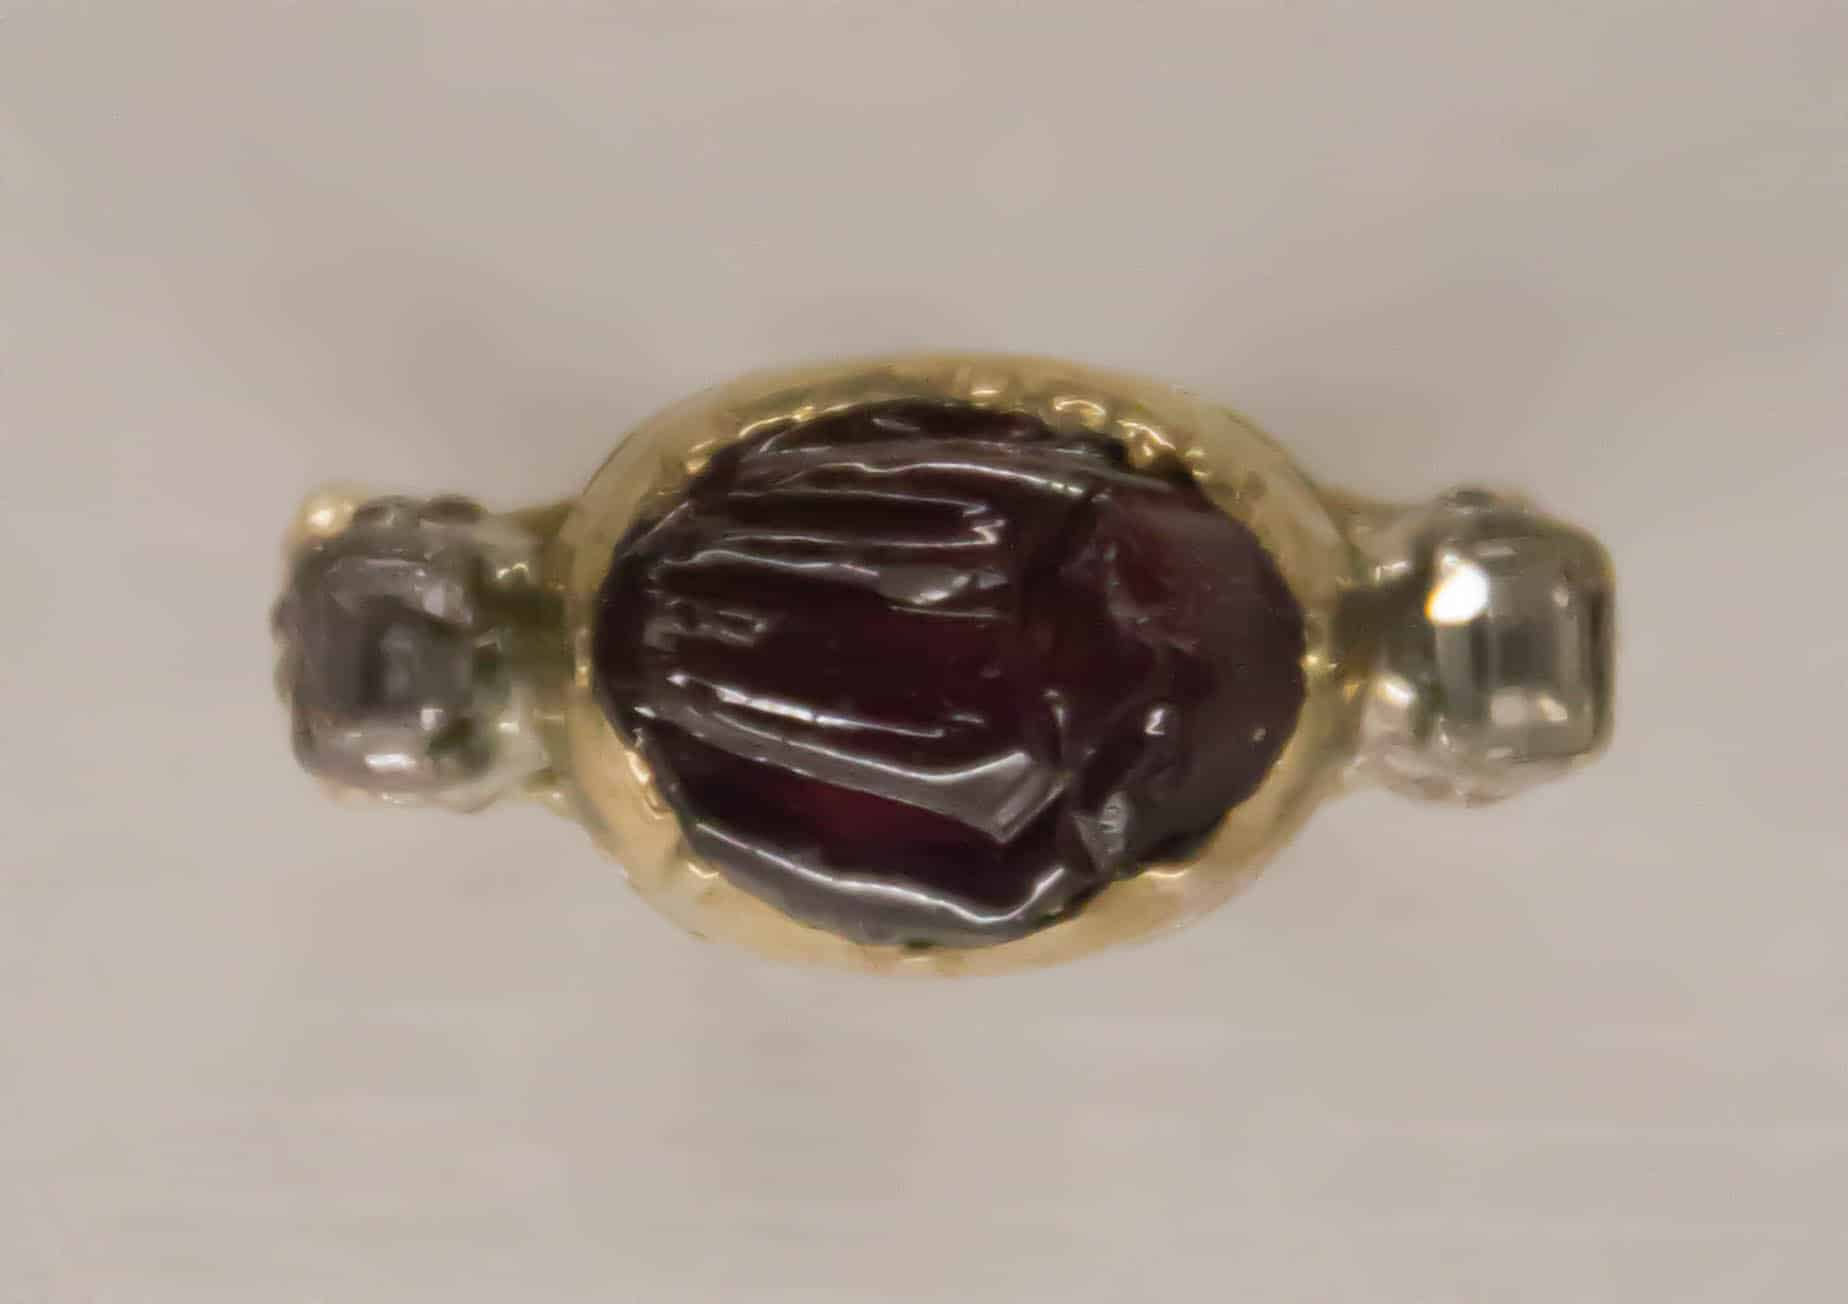 German Love Ring Mid 18th Cen Gold Diamonds Ruby.jpg